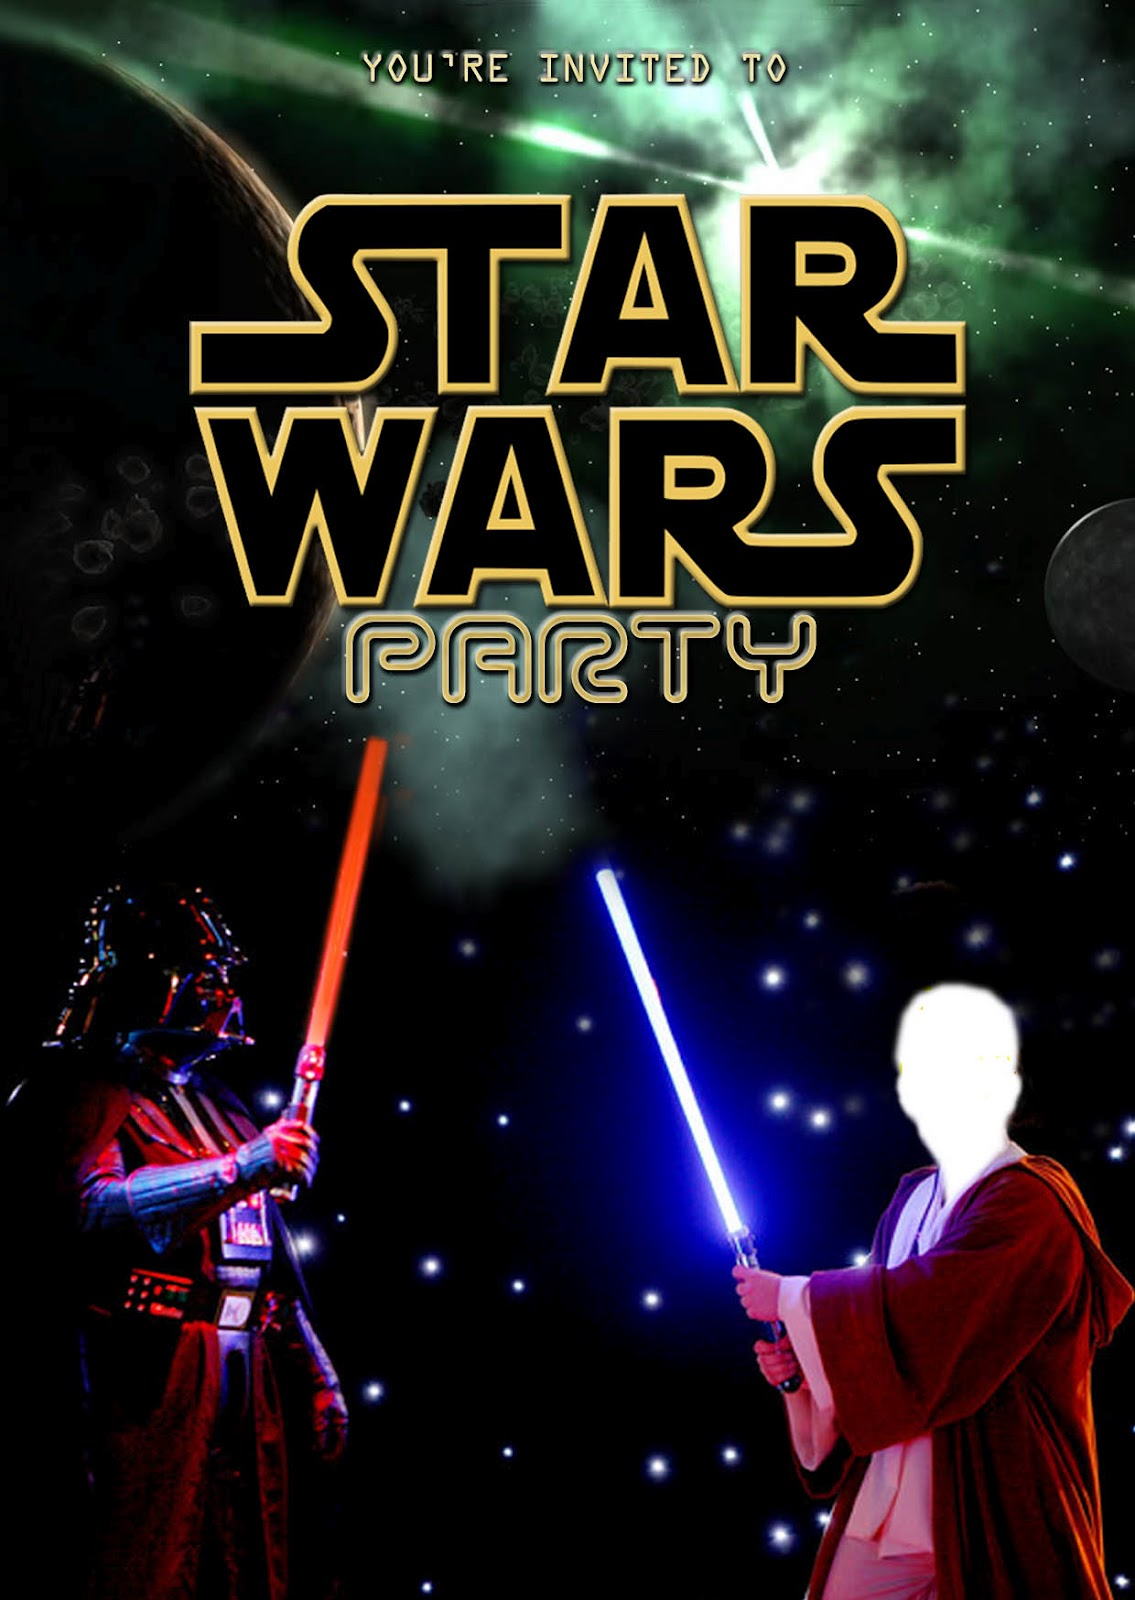 FREE Kids Party Invitations: Star Wars Party Invitation (self-edit)